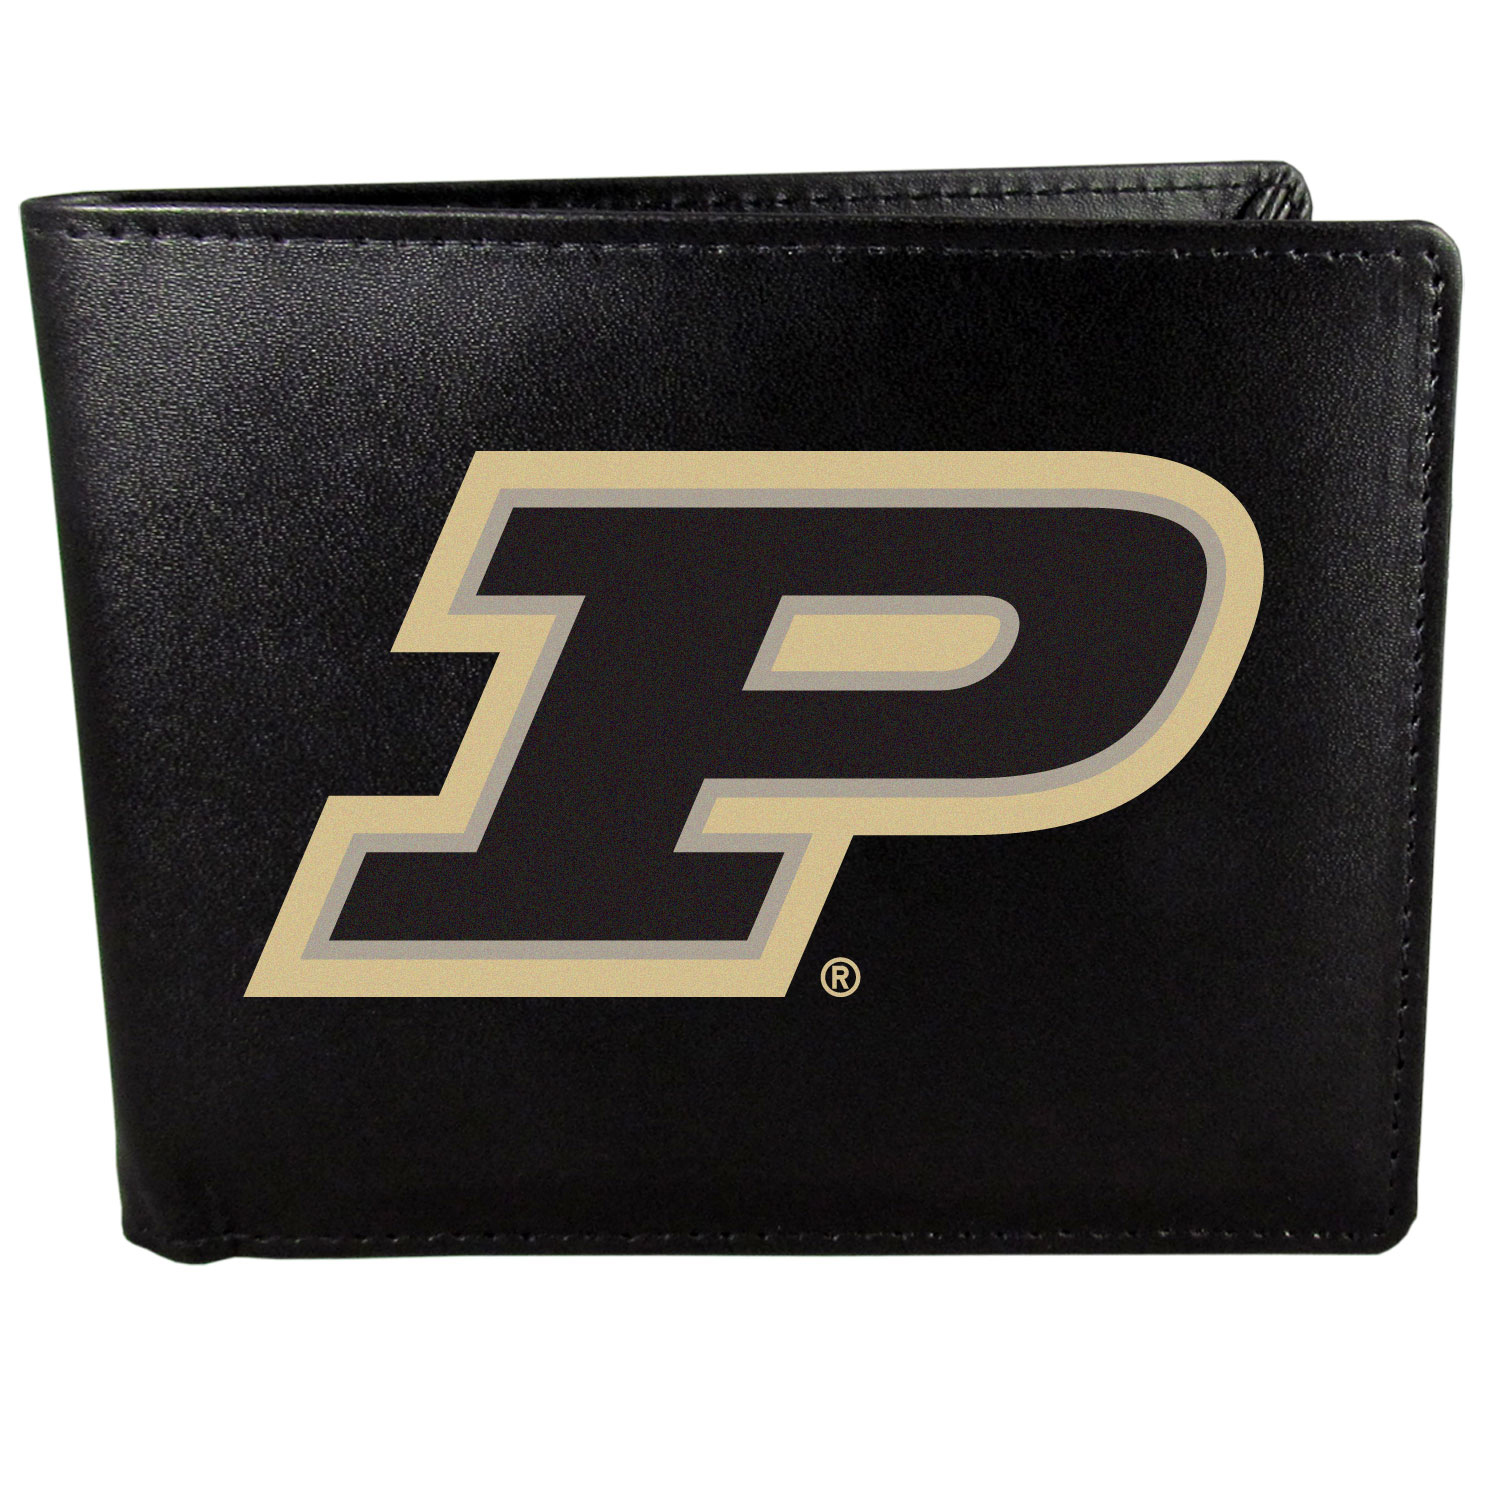 Purdue Boilermakers Leather Bi-fold Wallet, Large Logo - Our classic fine leather bi-fold wallet is meticulously crafted with genuine leather that will age beautifully so you will have a quality wallet for years to come. The wallet opens to a large, billfold pocket and numerous credit card slots and has a convenient windowed ID slot. The front of the wallet features an extra large Purdue Boilermakers printed logo.